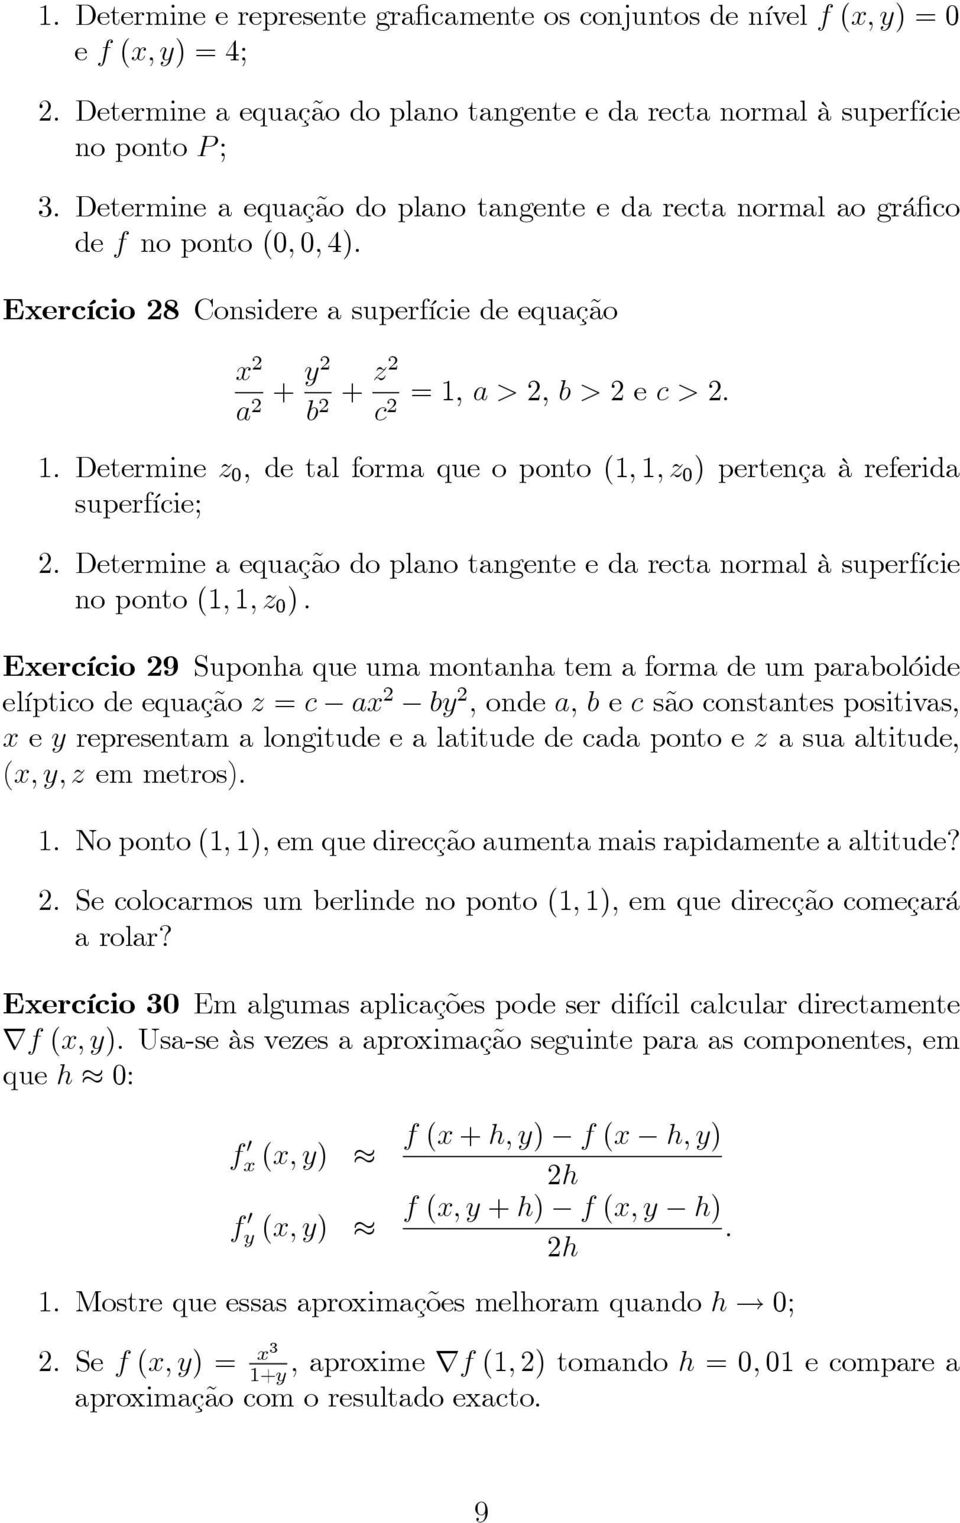 Determine 0, de tal forma que o ponto (1, 1, 0 ) pertença à referida superfície; 2. Determine a equação do plano tangente e da recta normal à superfície no ponto (1, 1, 0 ).